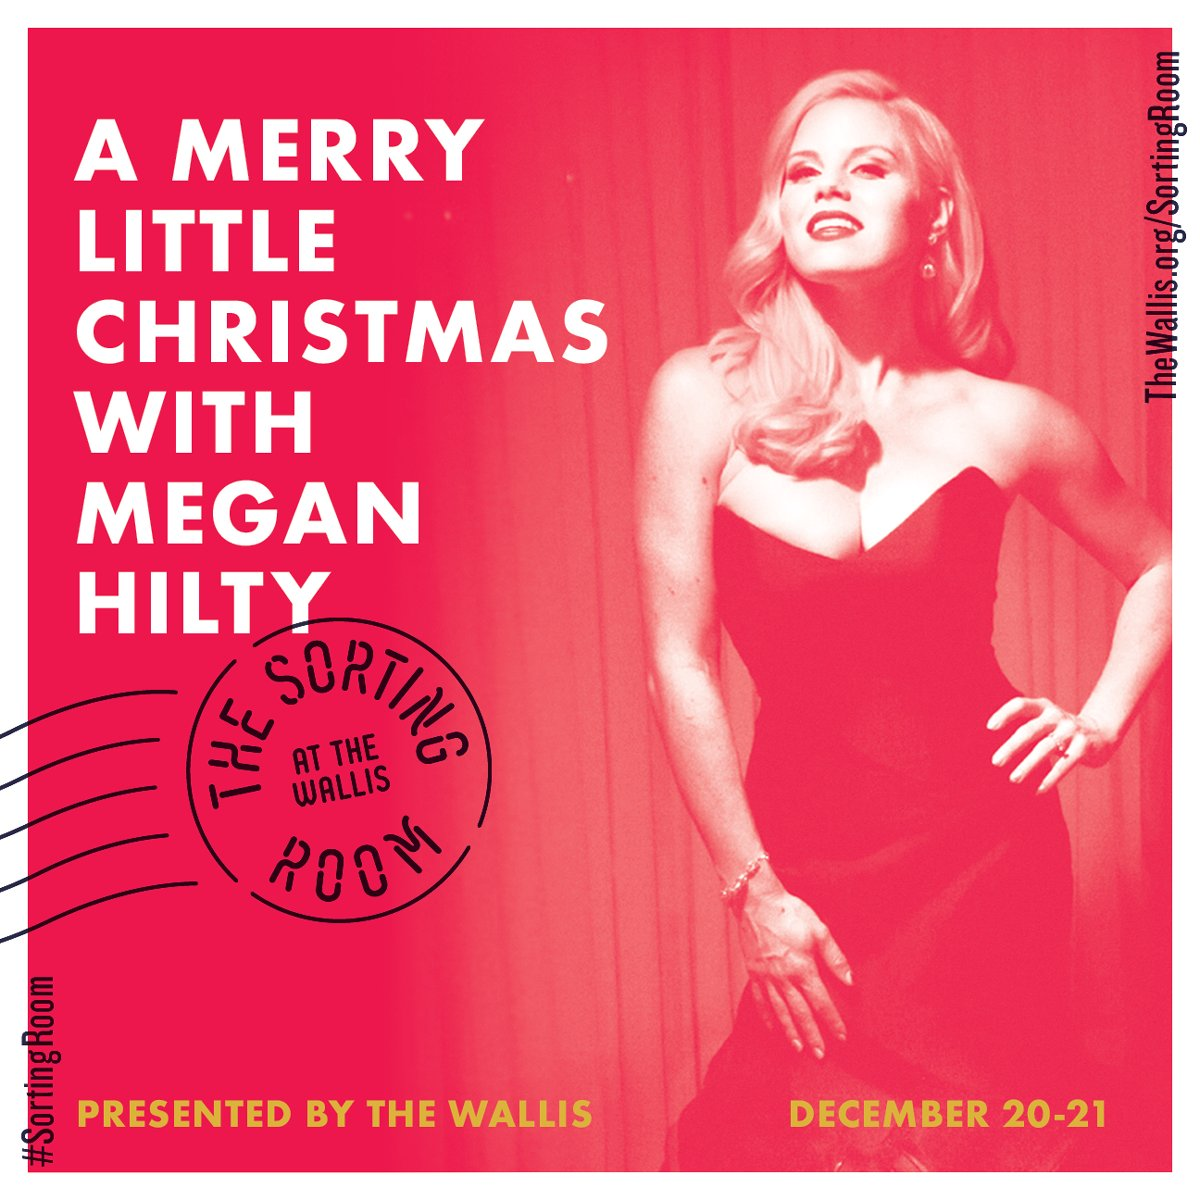 RT @TheWallisBH: Don't you want to celebrate the holidays with @meganhilty in The #SortingRoom? https://t.co/kmsPlRQIIO